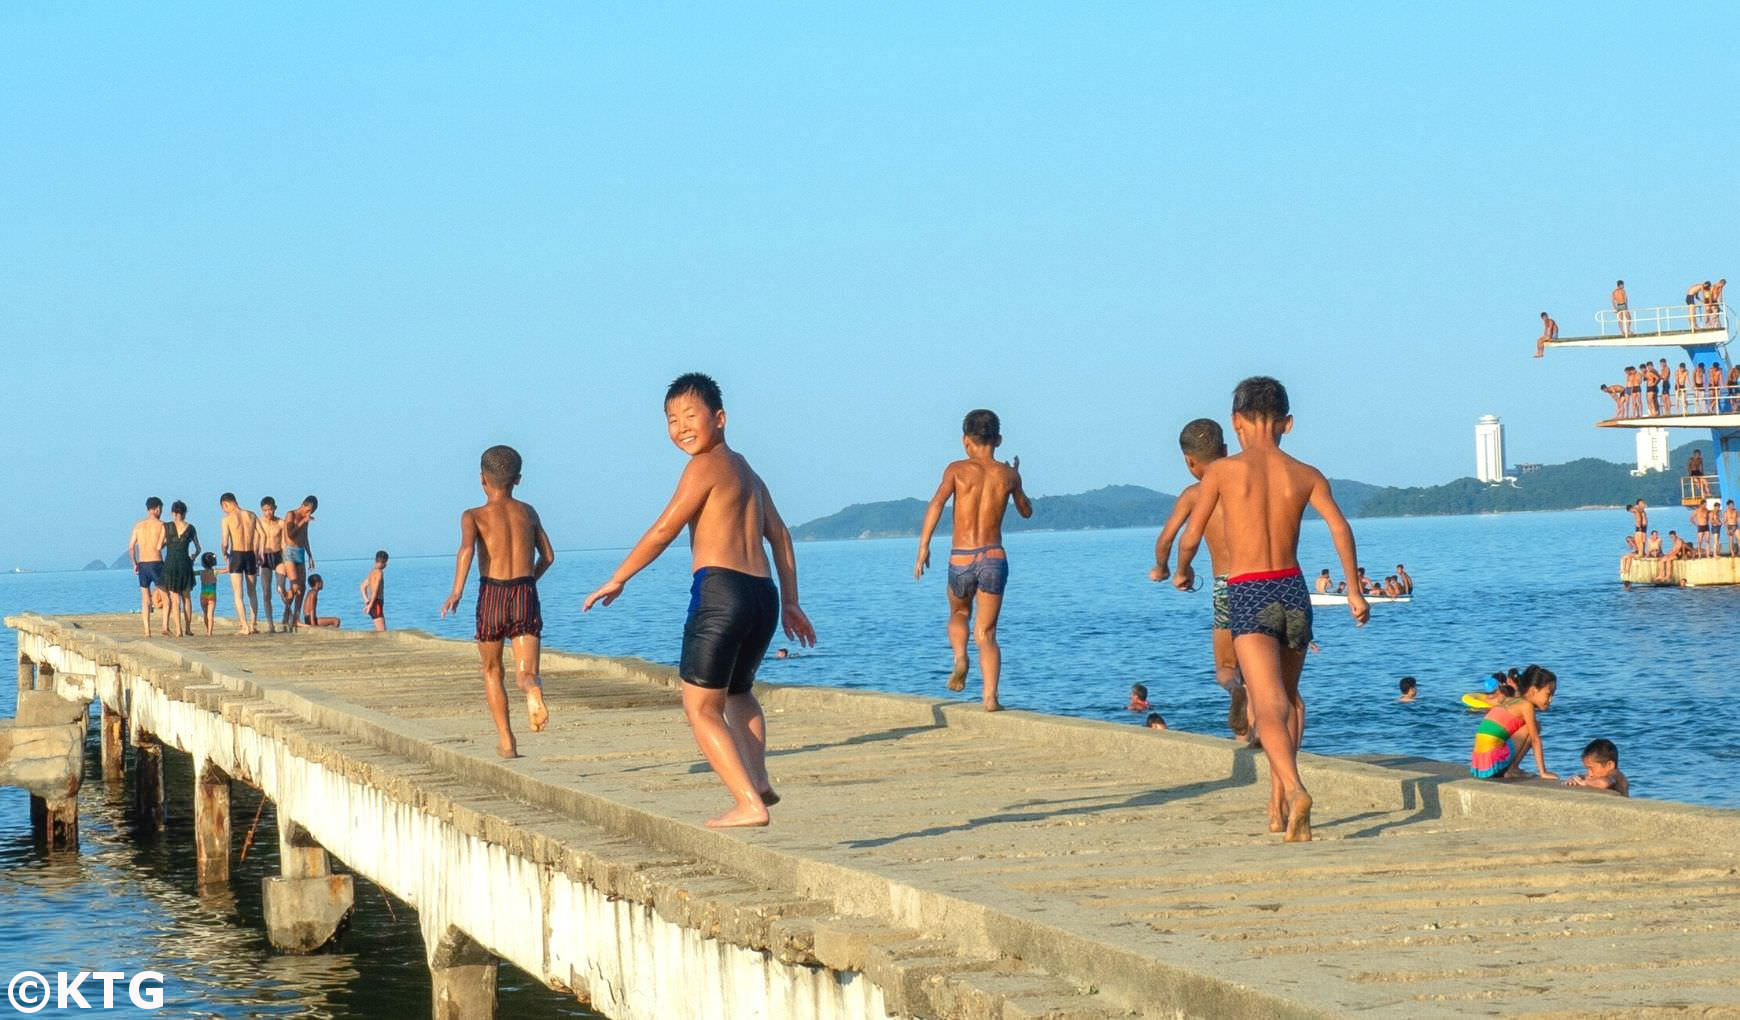 North Korean children at the beach in Wonsan city, Kangwon province, North Korea (DPRK). Trip arranged by KTG Tours